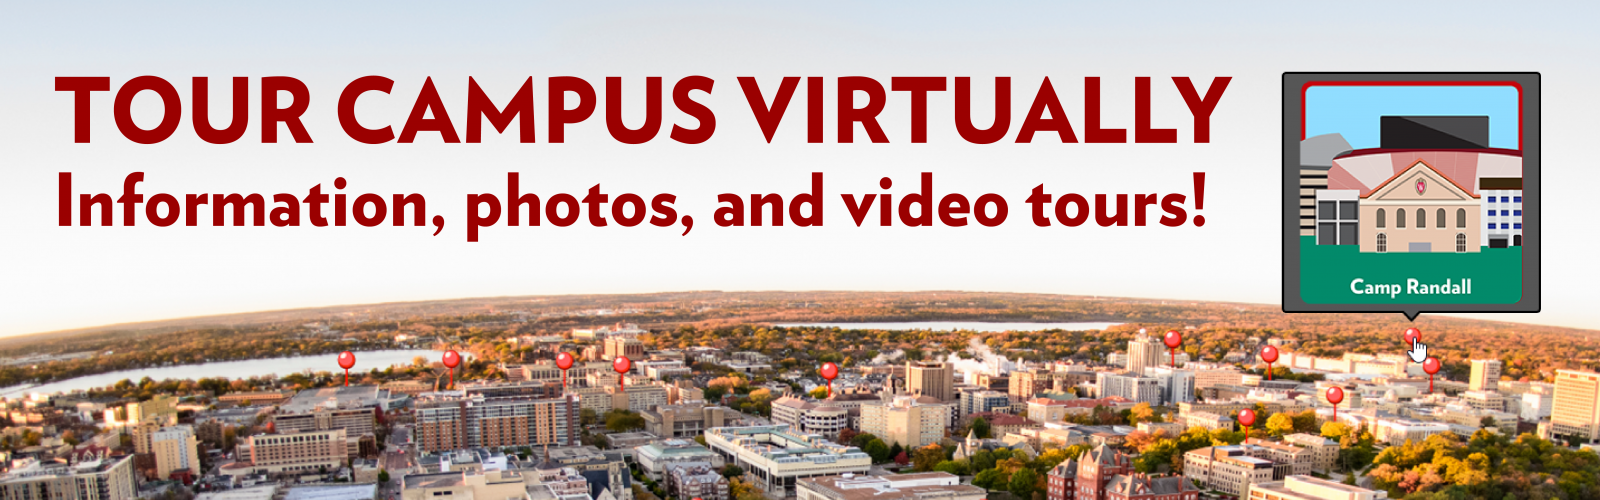 Tour Campus Virtually - information, photos, and video tours